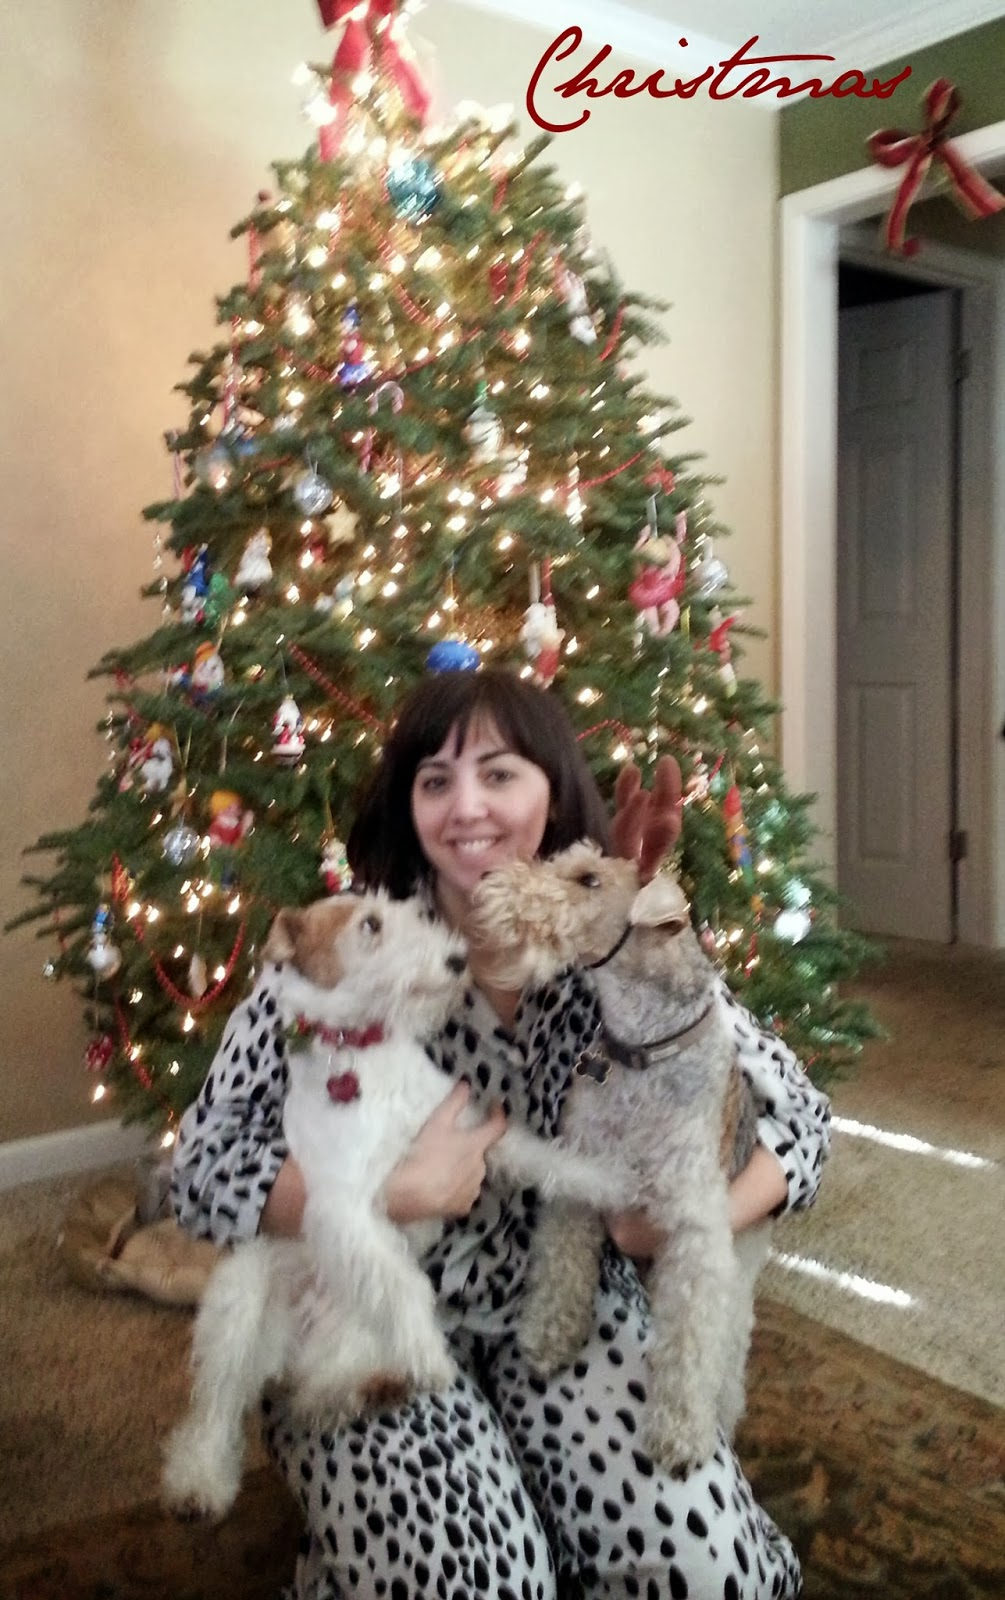 Merry Christmas from the Tipsy Terriers - The Tipsy Terrier blog